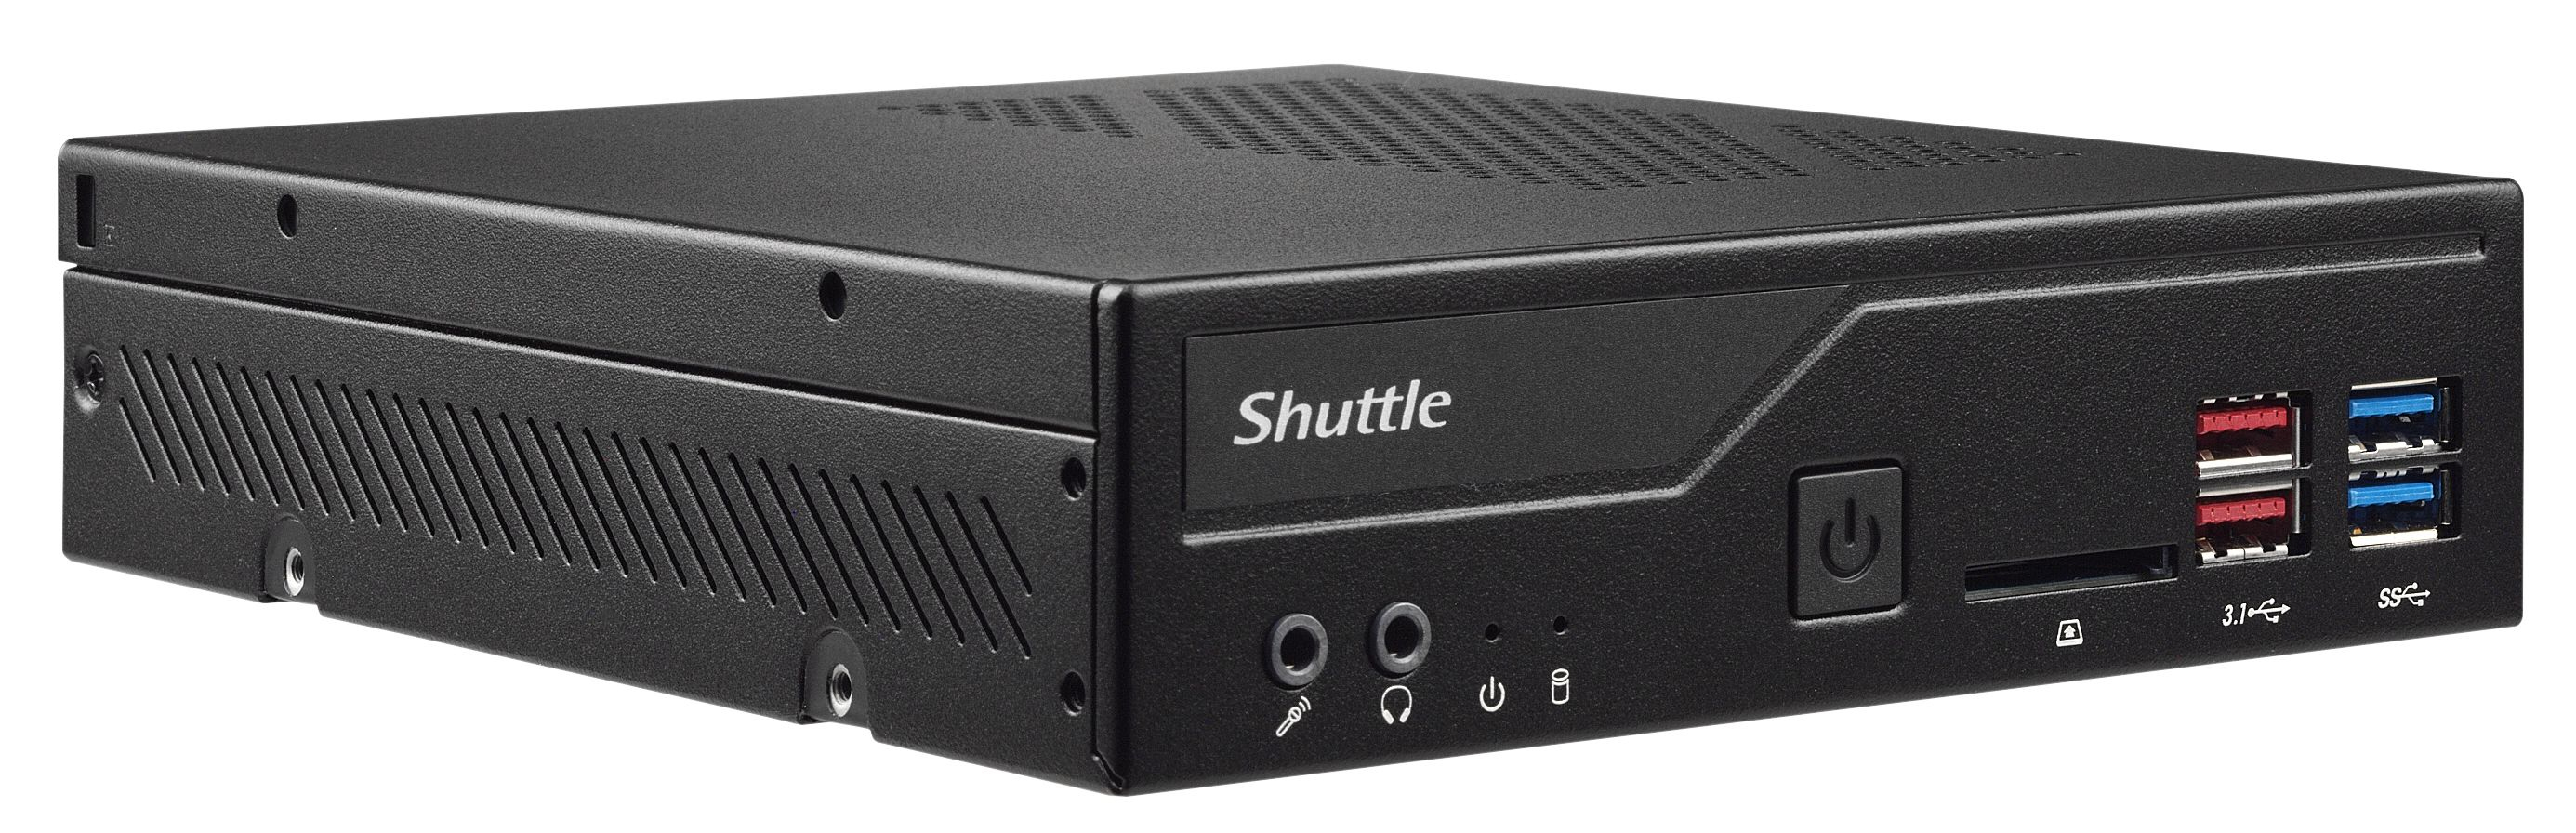 Shuttle Barebone slim DH370 Intel H370 SO-DIMM black - Barebone - Intel Sockel 1151v2 (Core i)